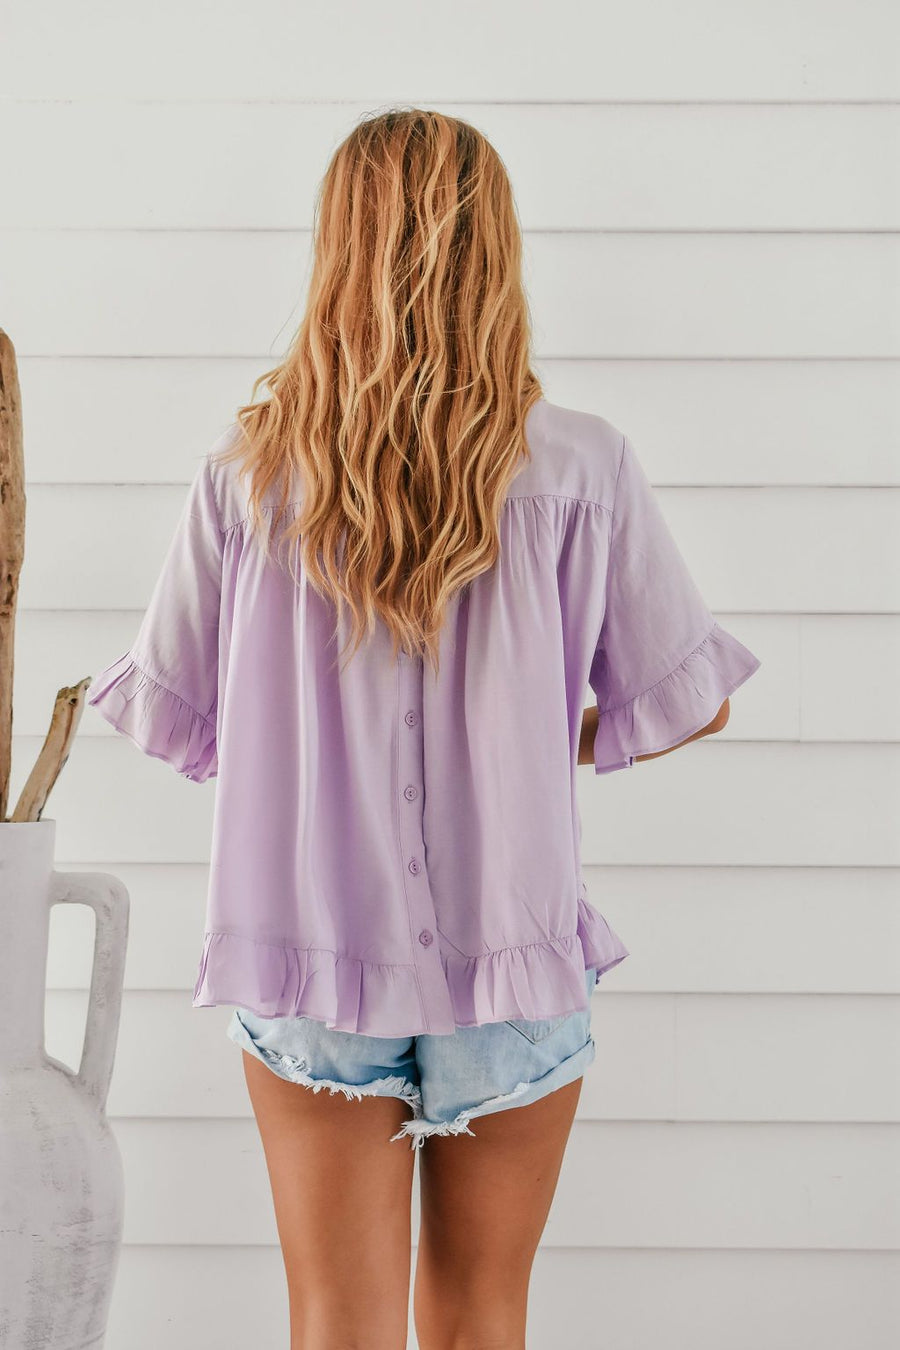 Belle Top | Lavender - Gray Label Top Gray.Label